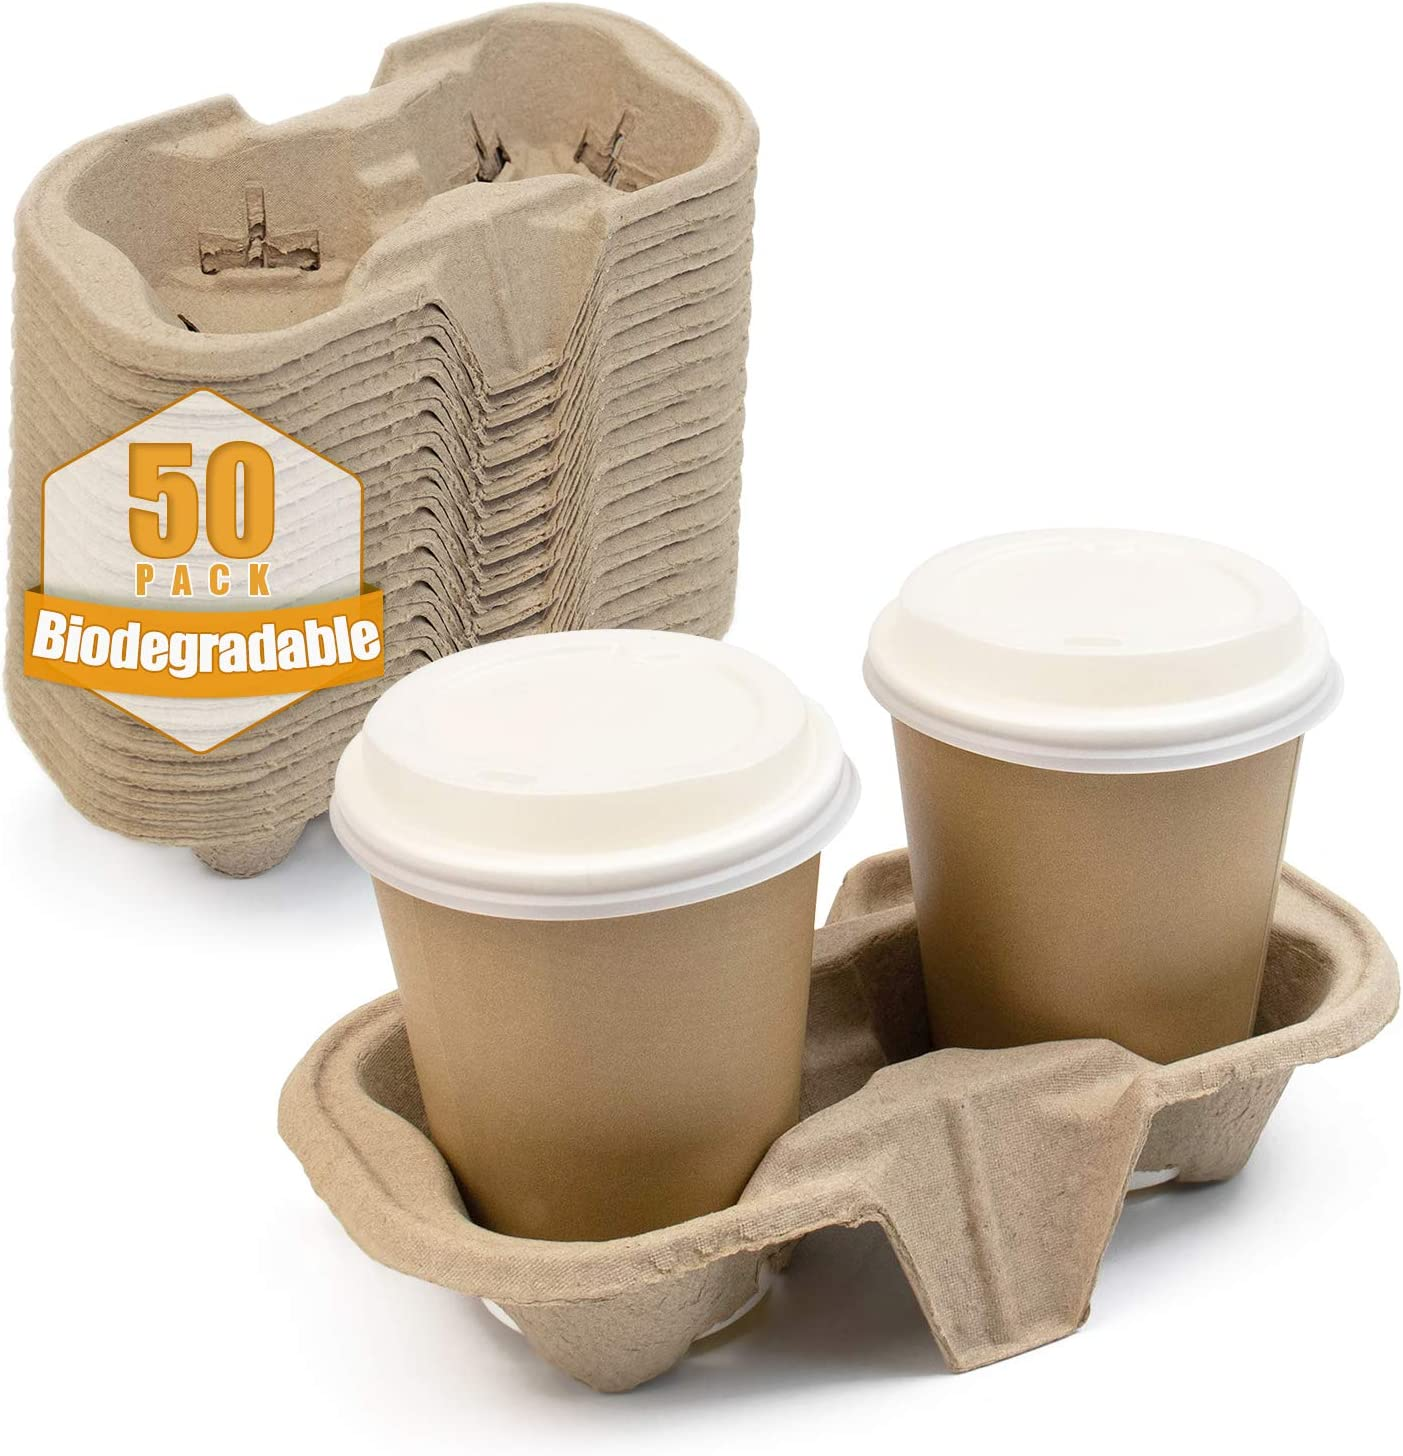 Green Earth, 50 Pack 2-Drink Biodegradable Cup Tray, Eco-Friendly Carrier for Hot and Cold Drinks, Great for to-Go Orders, Stackable and Sturdy, Environment Safe